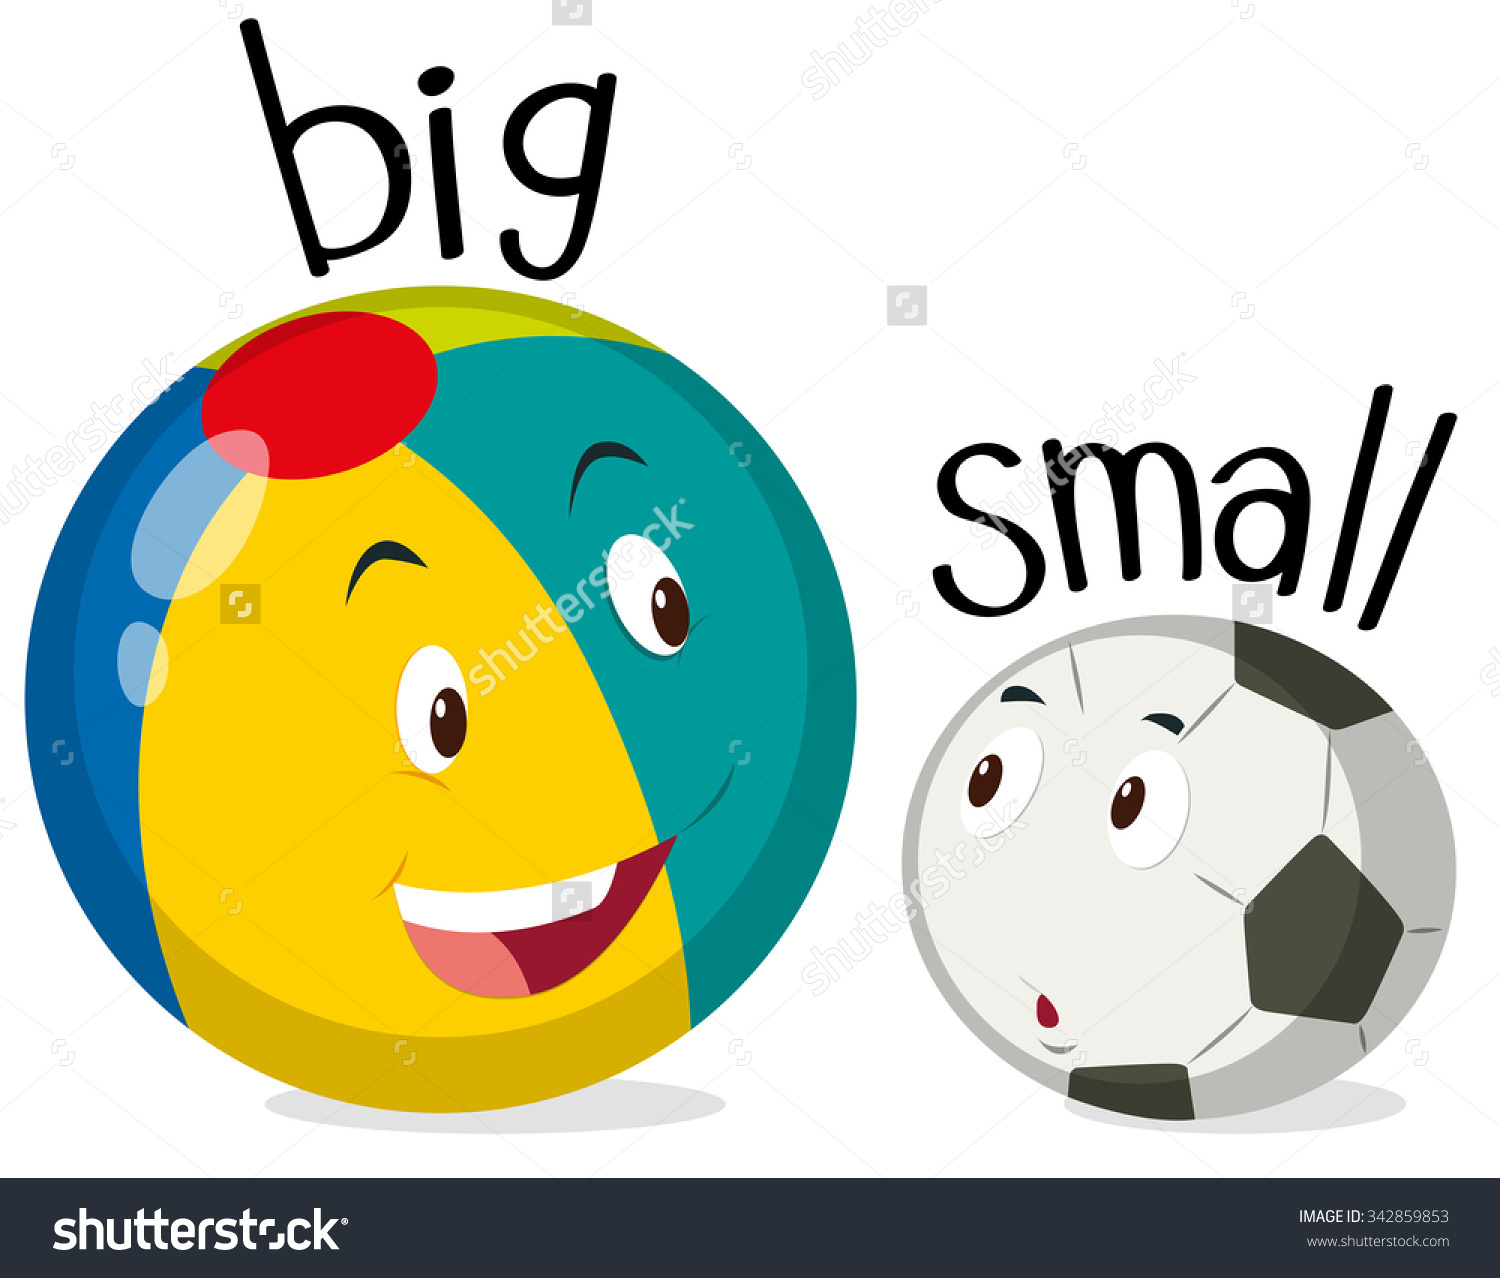 Big and small clipart svg royalty free download Big and Small Clip Art – Clipart Free Download svg royalty free download